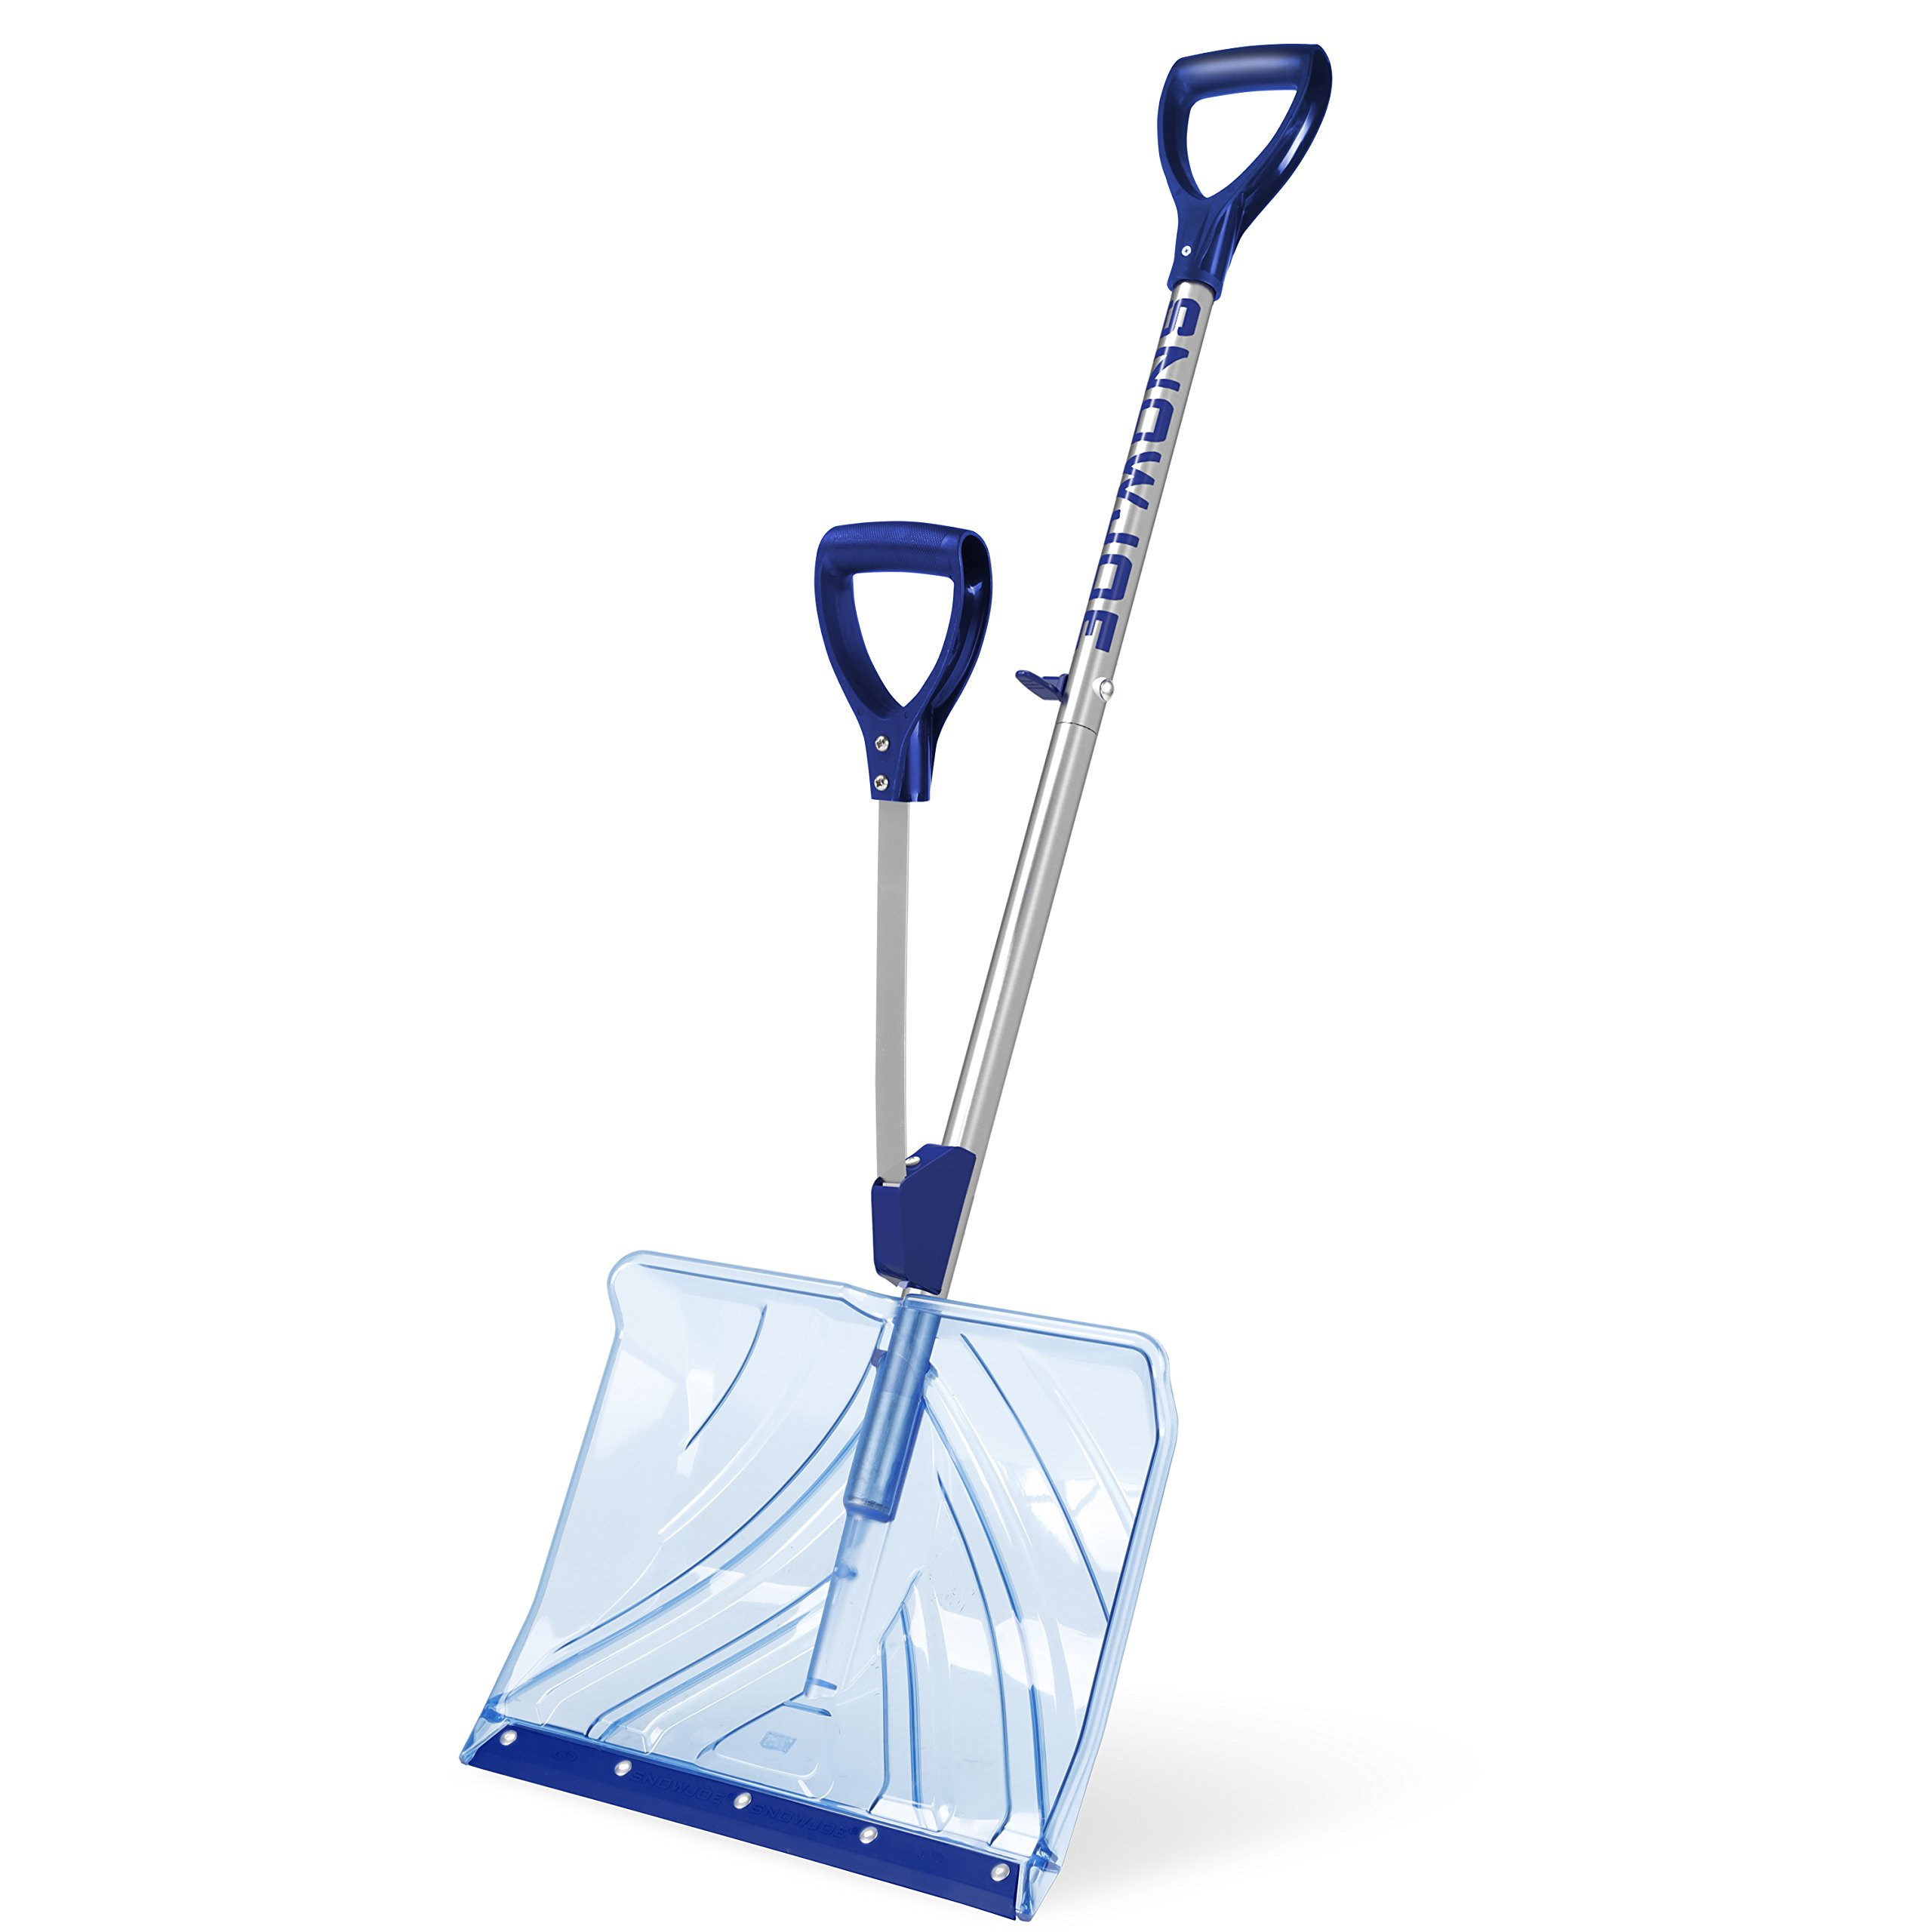 Snow Joe SJ-SHLV02 18-IN Strain-Reducing Poly Carbonate Blade Snow Shovel w/Spring Assisted Handle